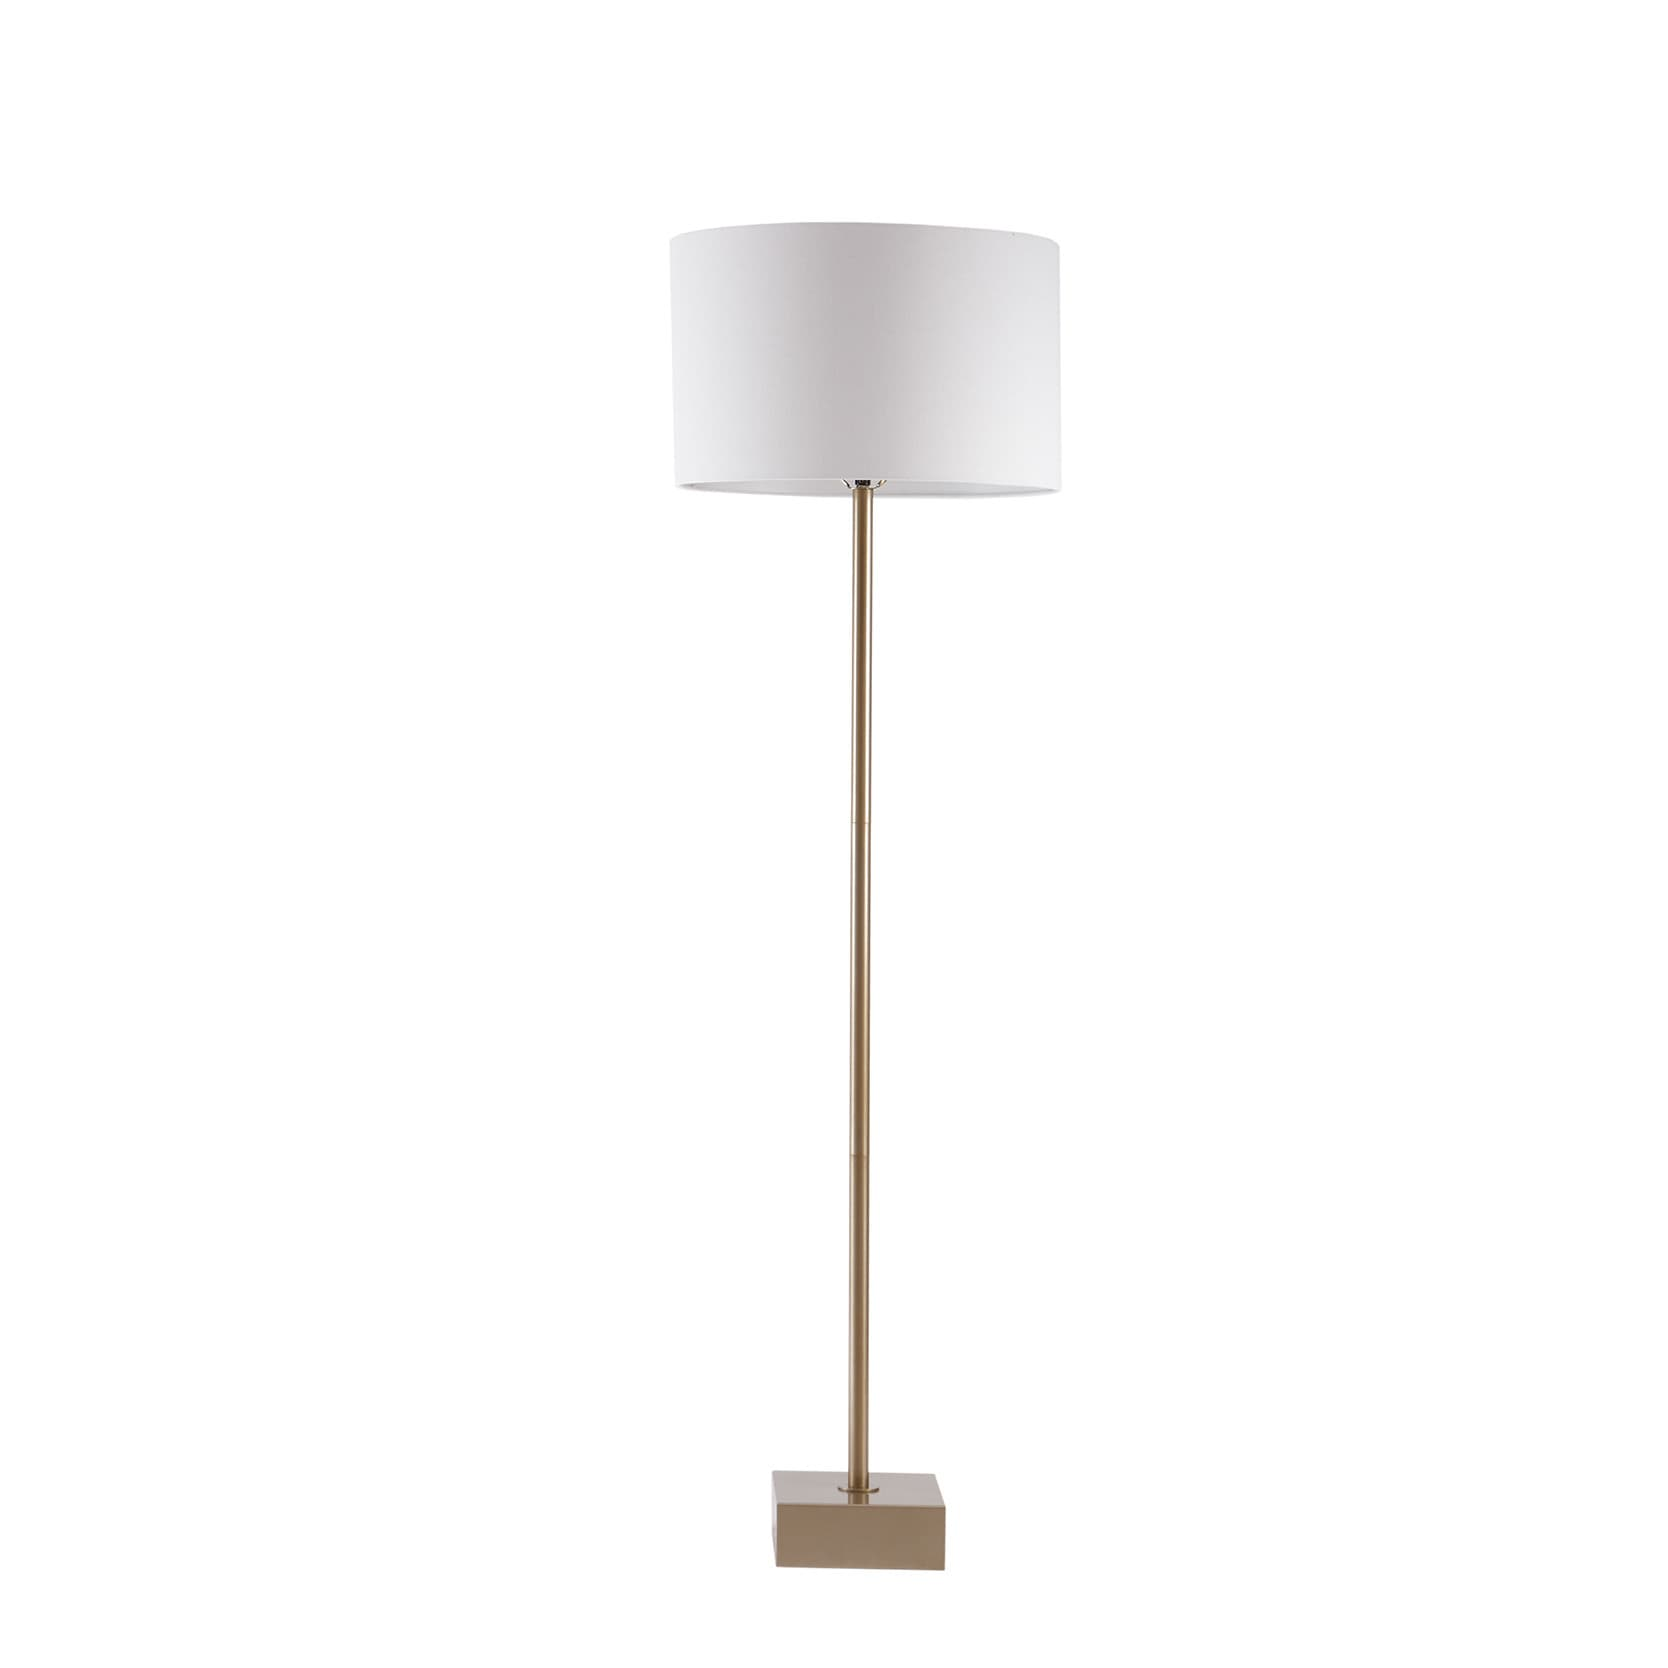 ikea lamp gb standard floor ngland products lighting white en lamps